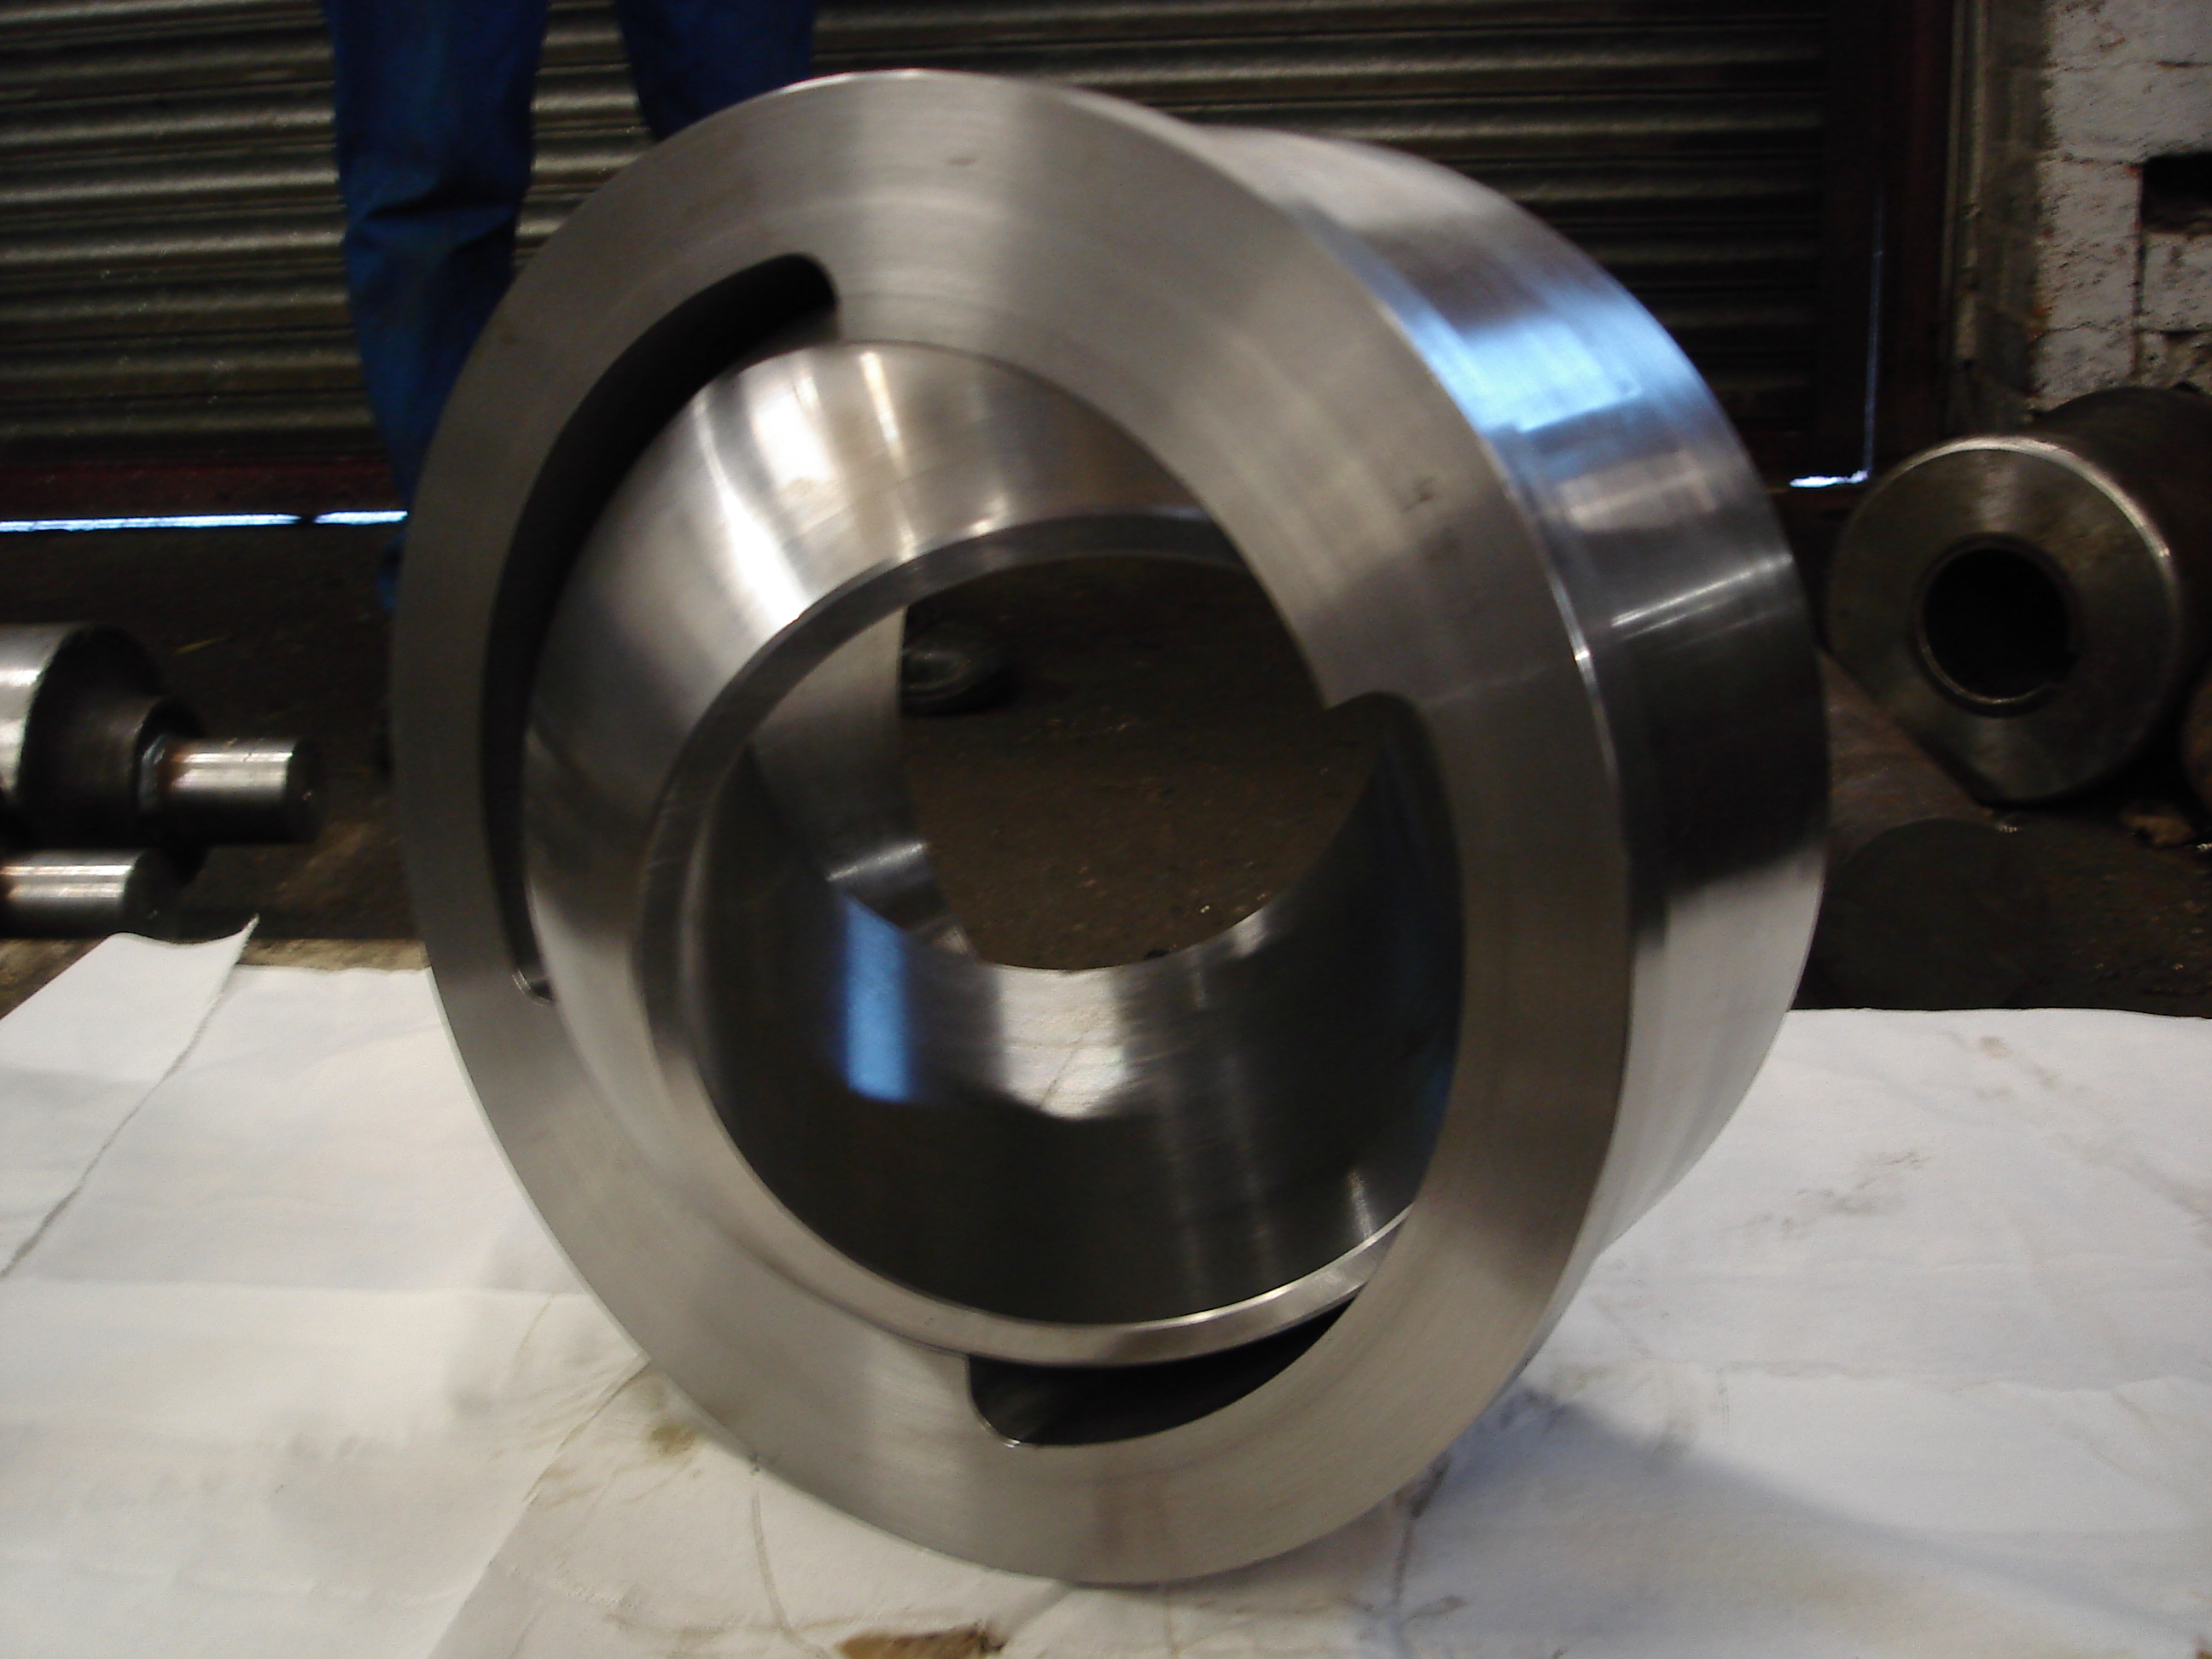 Spherical bearing and housing